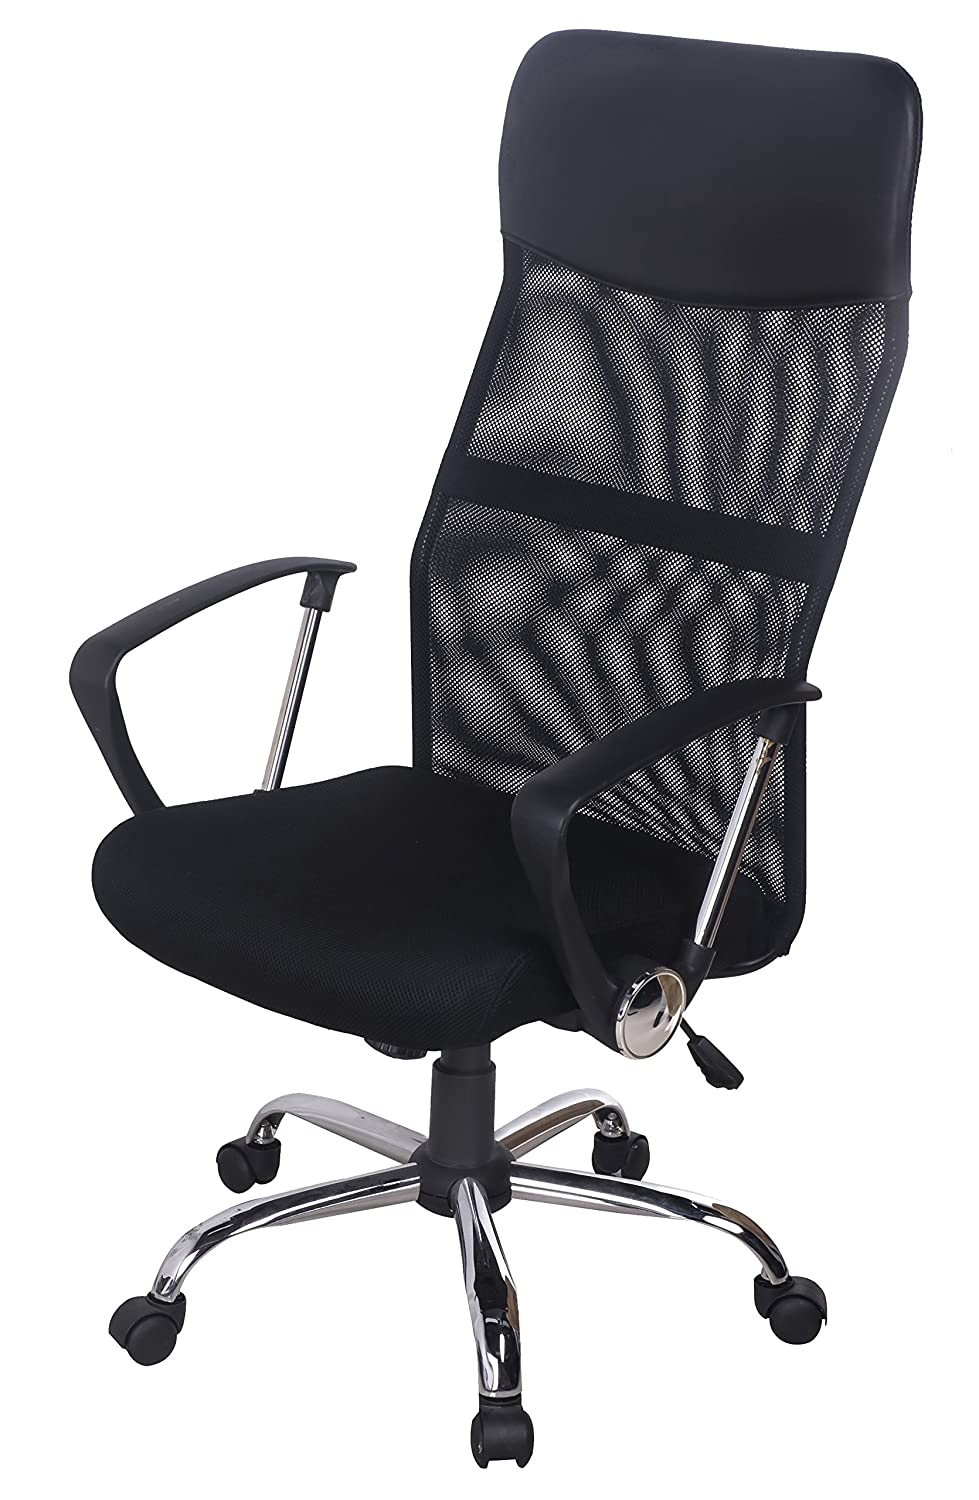 High Back Executive Mesh Office Chair Swivel/tilt Chair Computer Desk Chair, Black